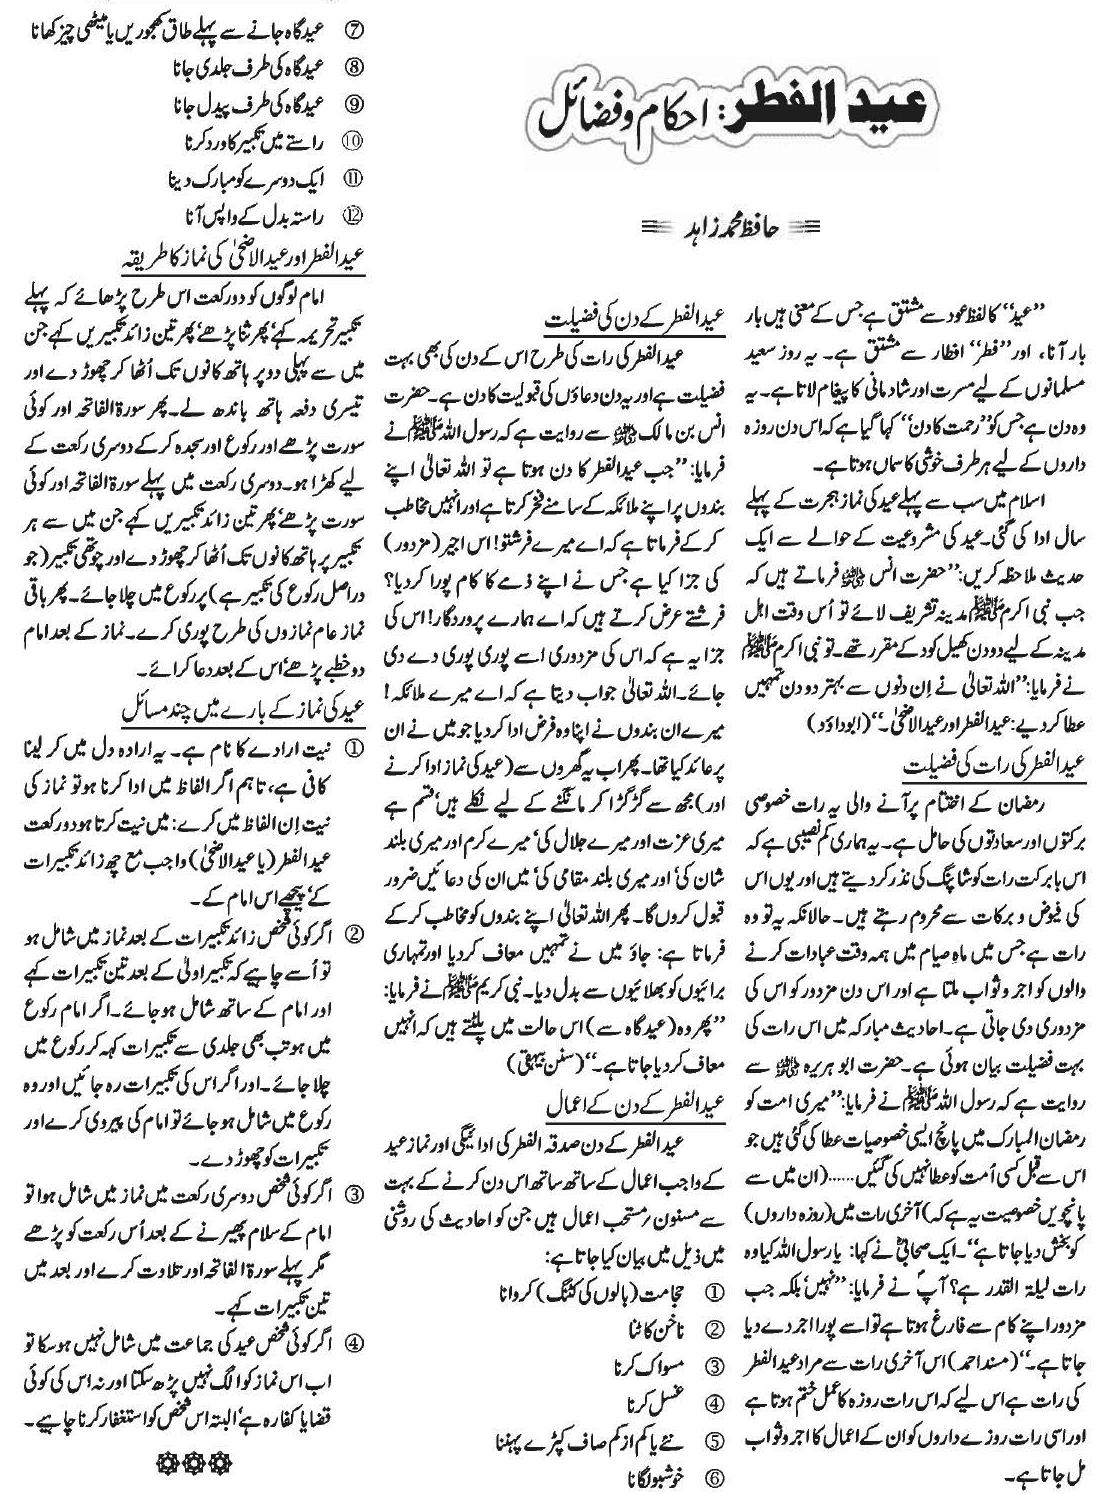 terrorism essay in urdu language